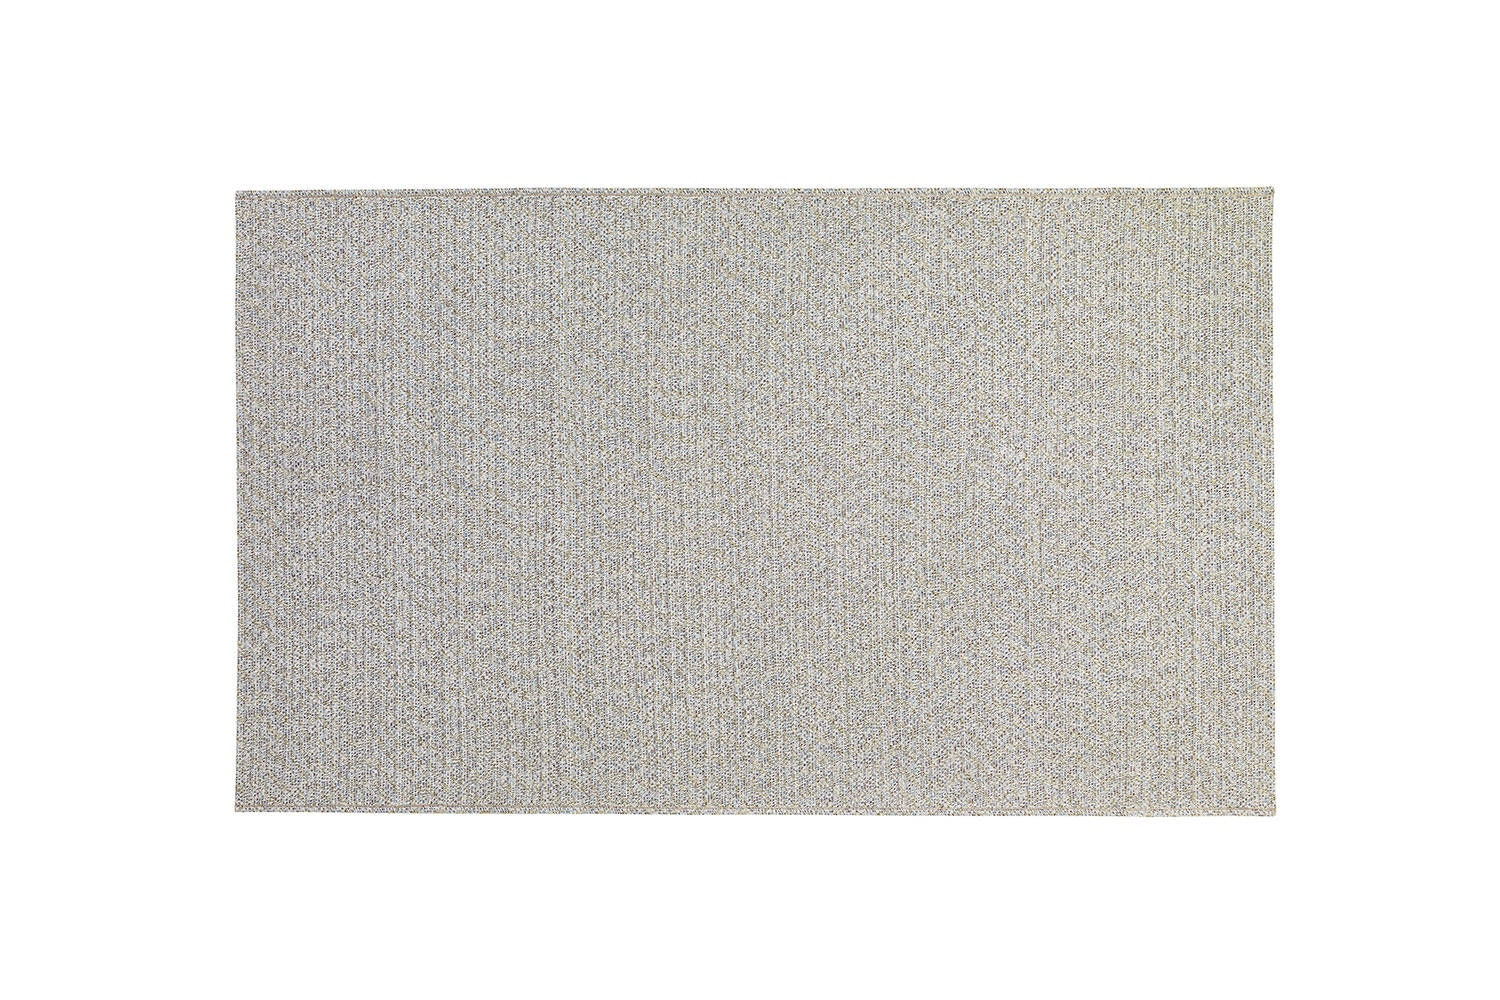 Kaleidos Rug by B&B Italia